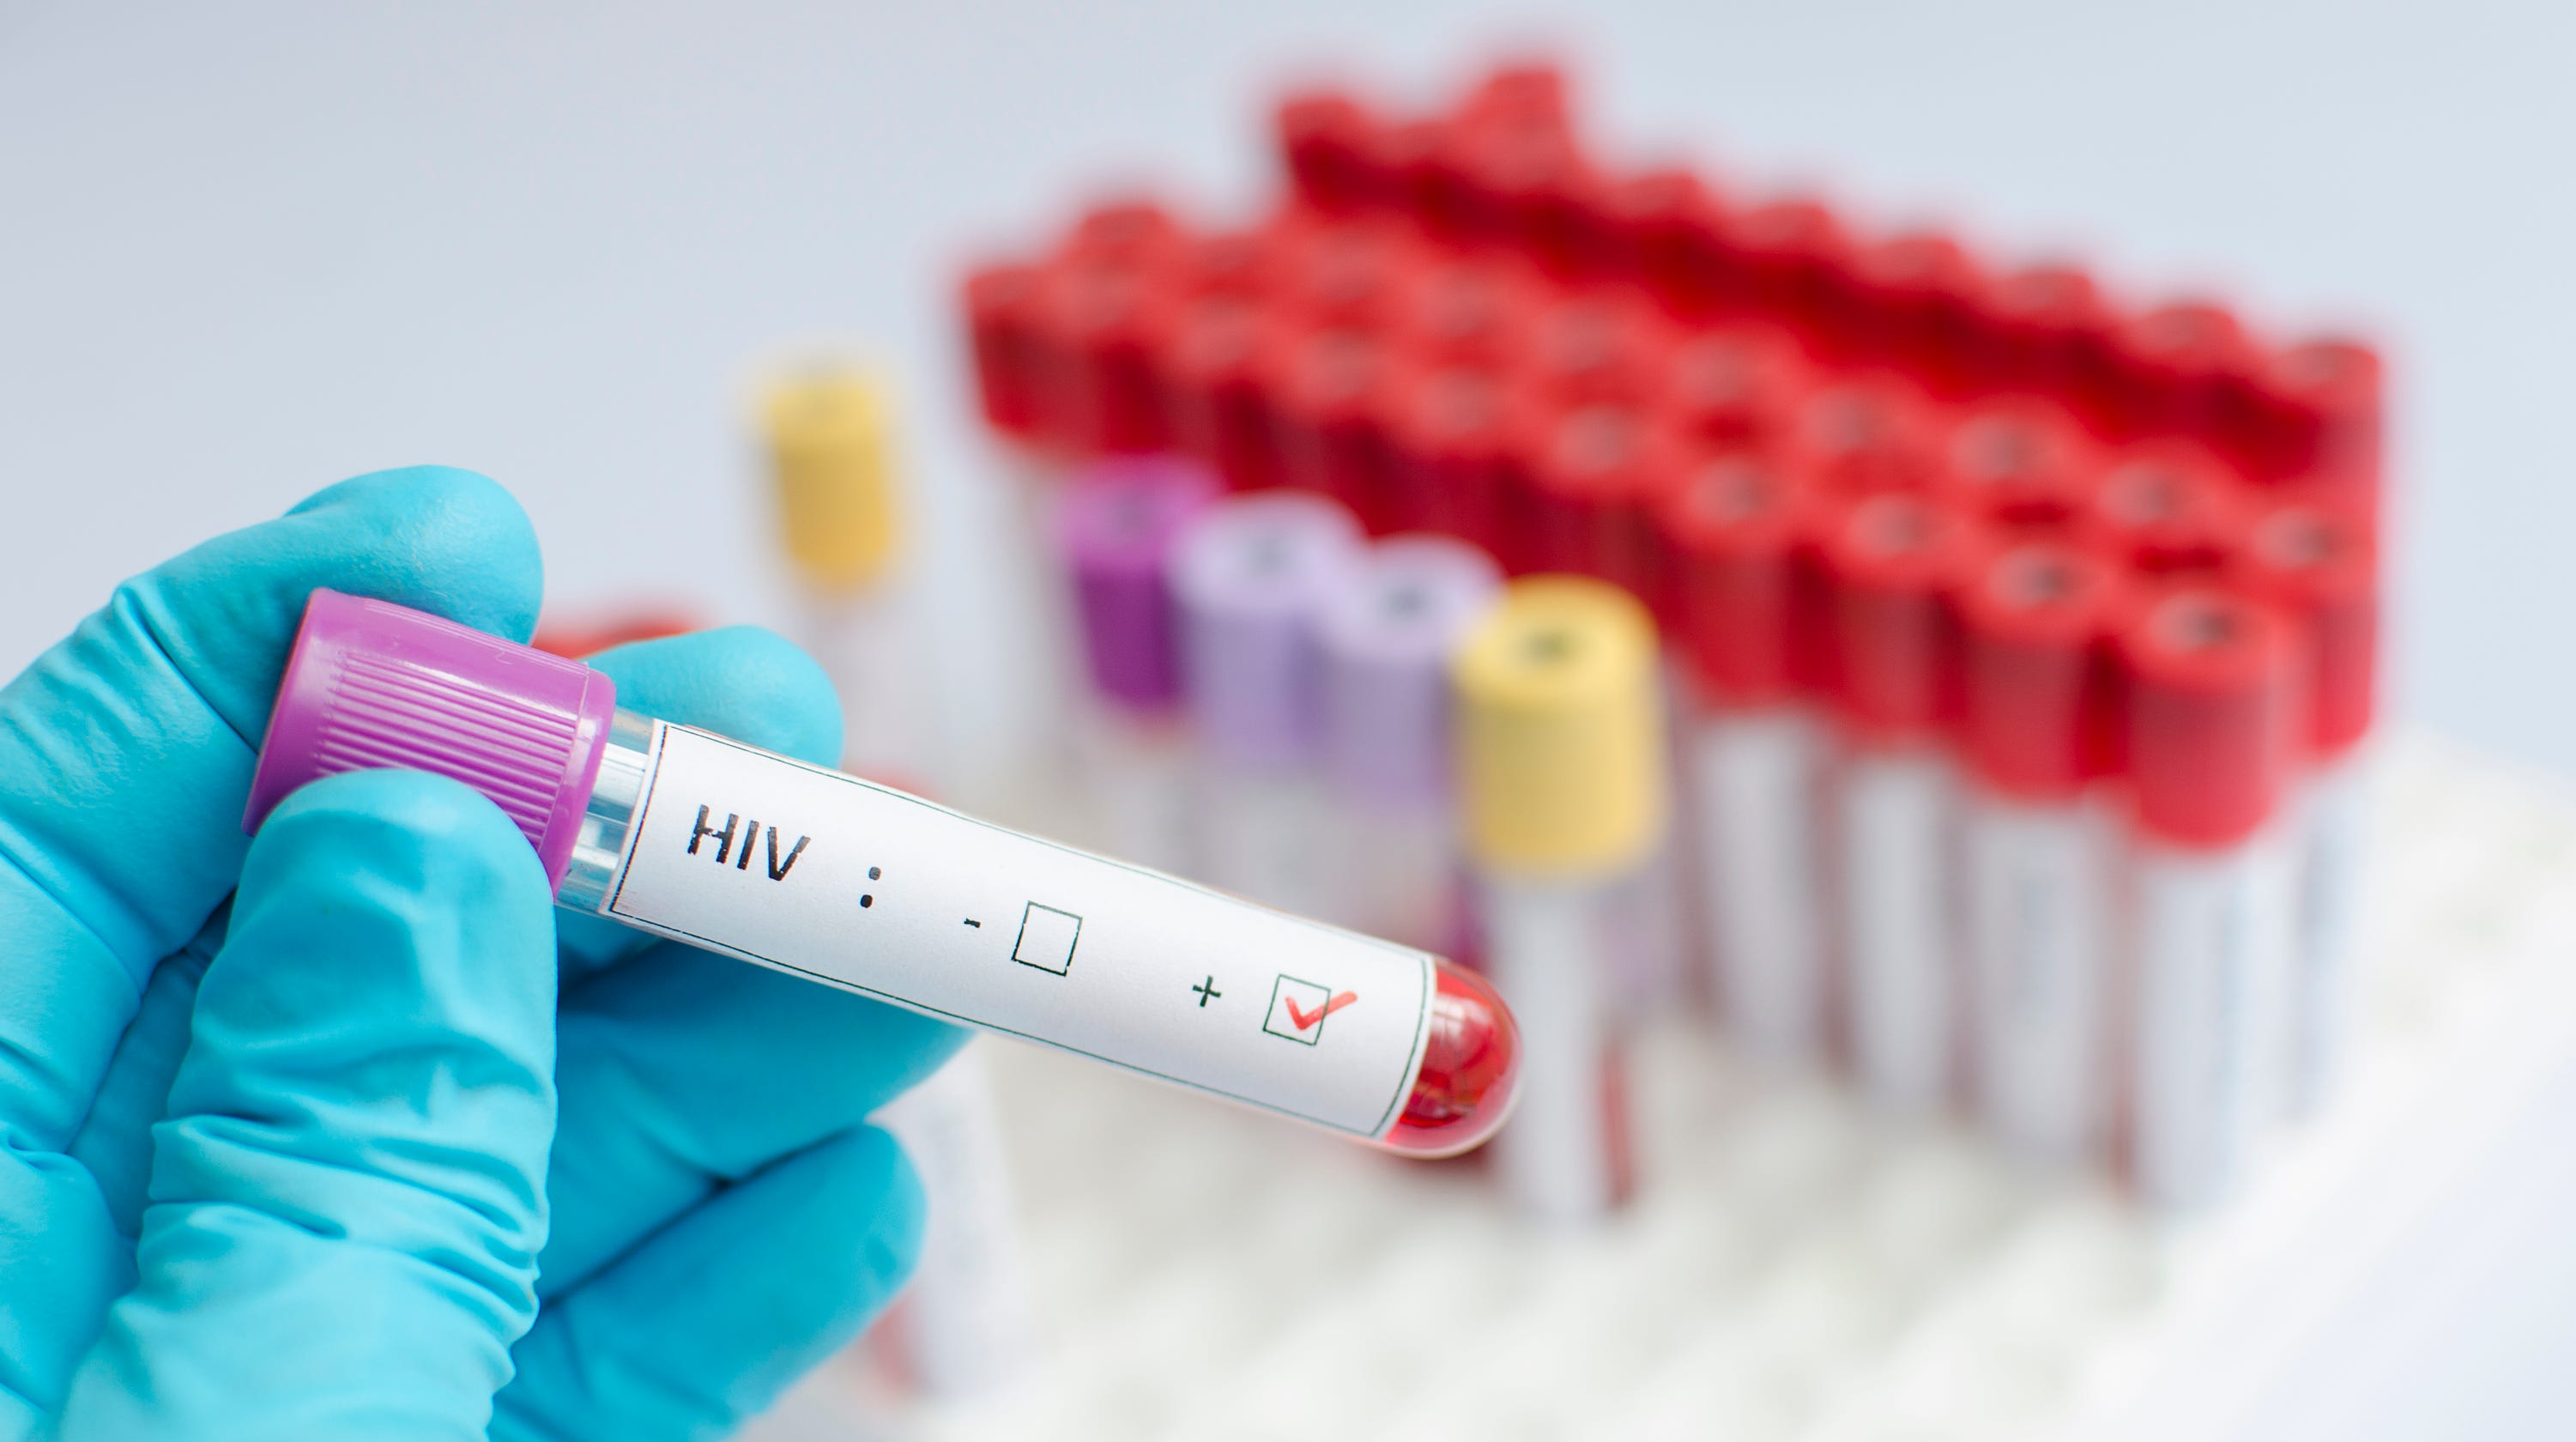 HIV cure: Second HIV patient cured but experimental